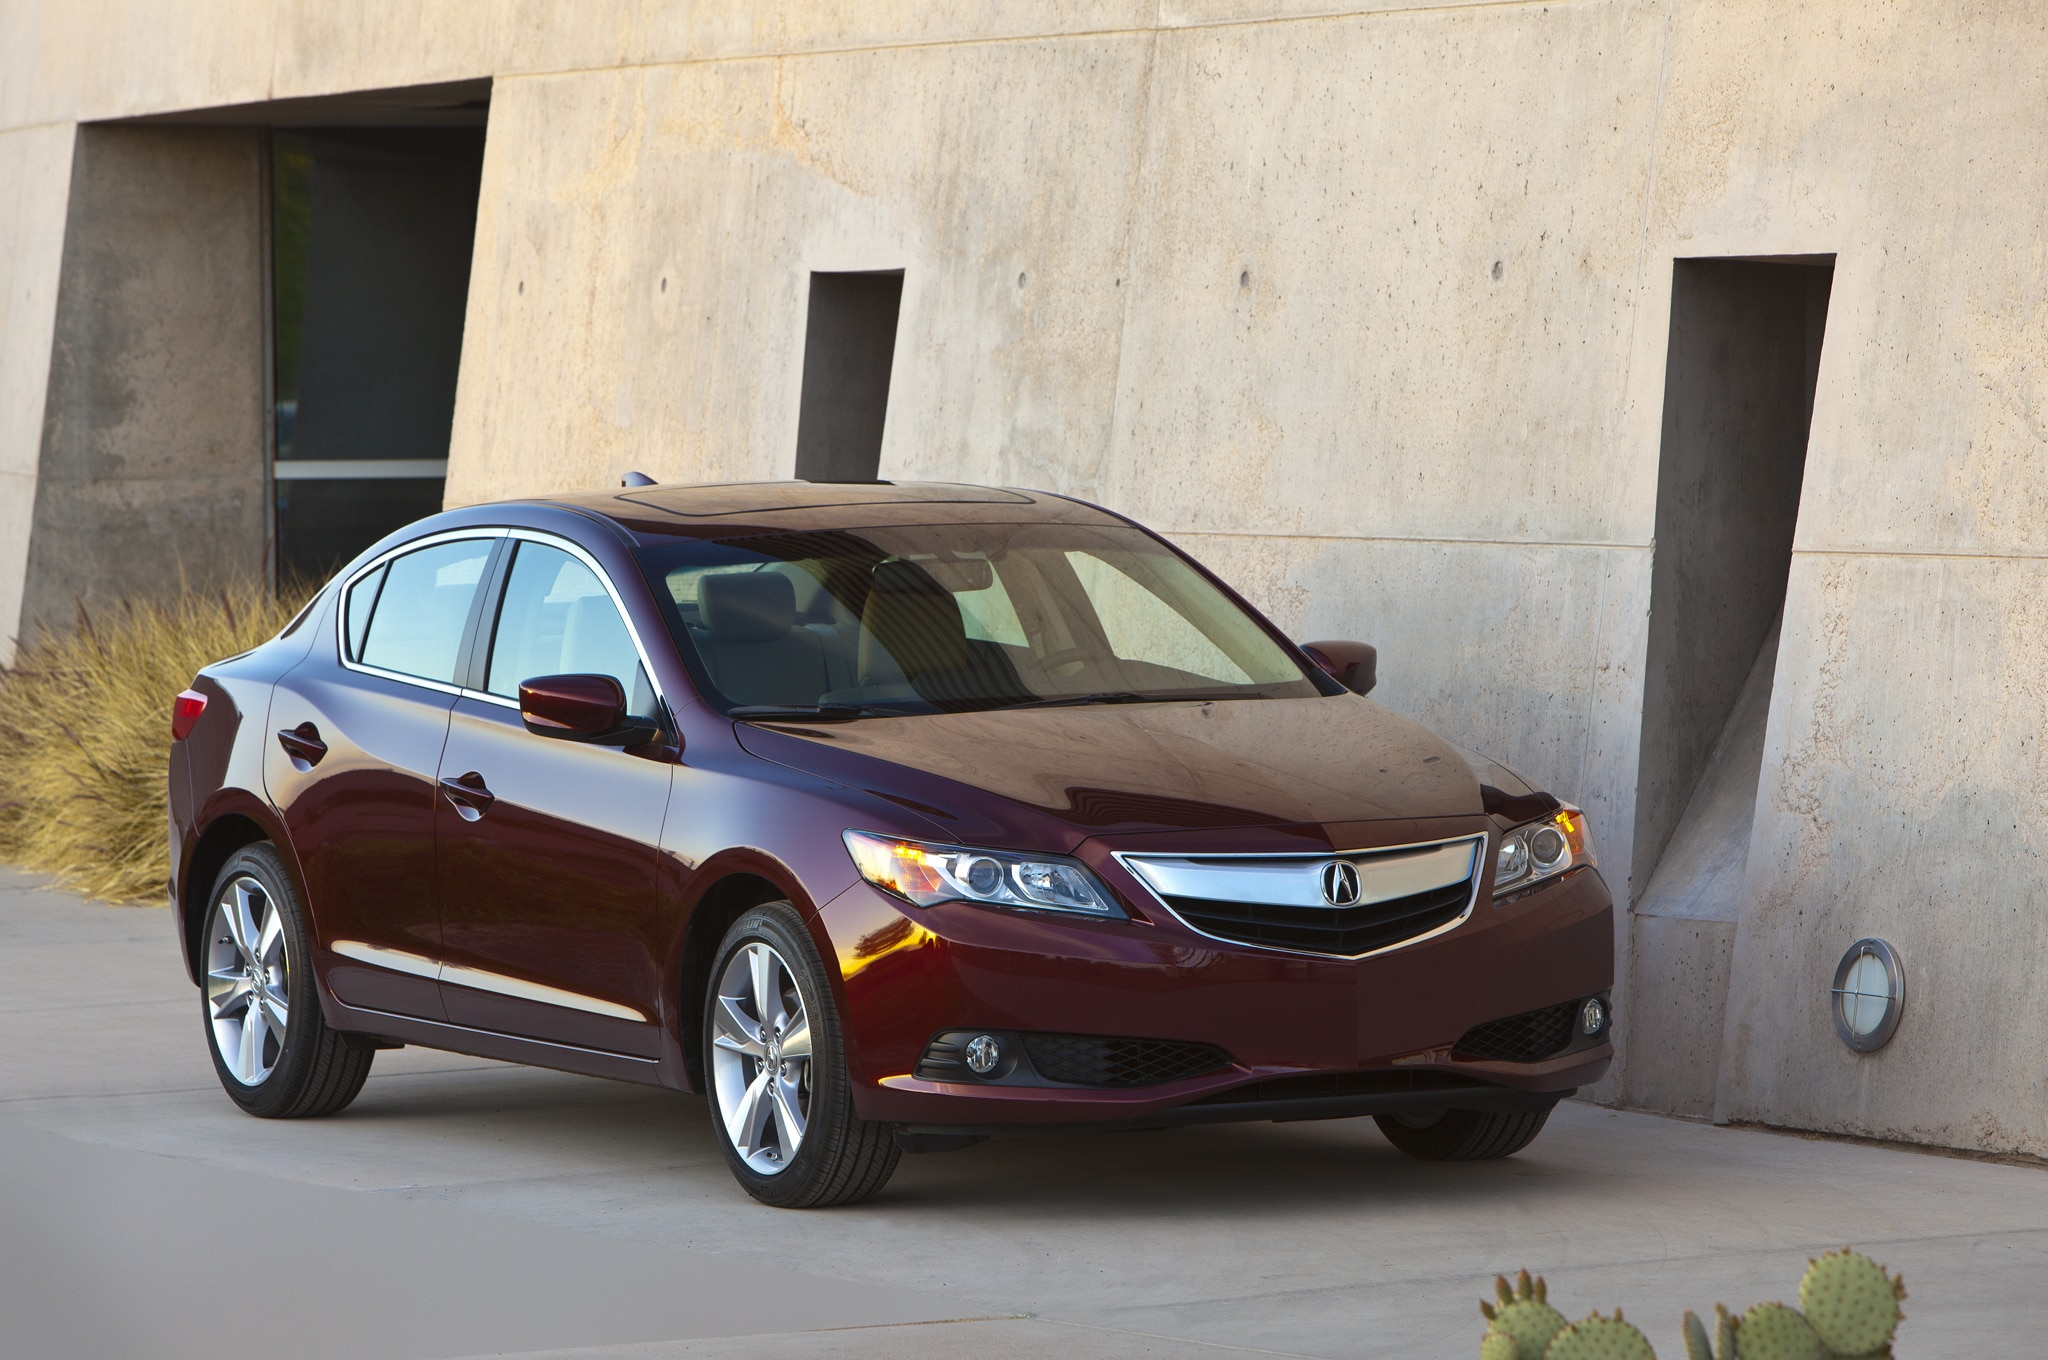 2015 Acura ILX 2.4L Review